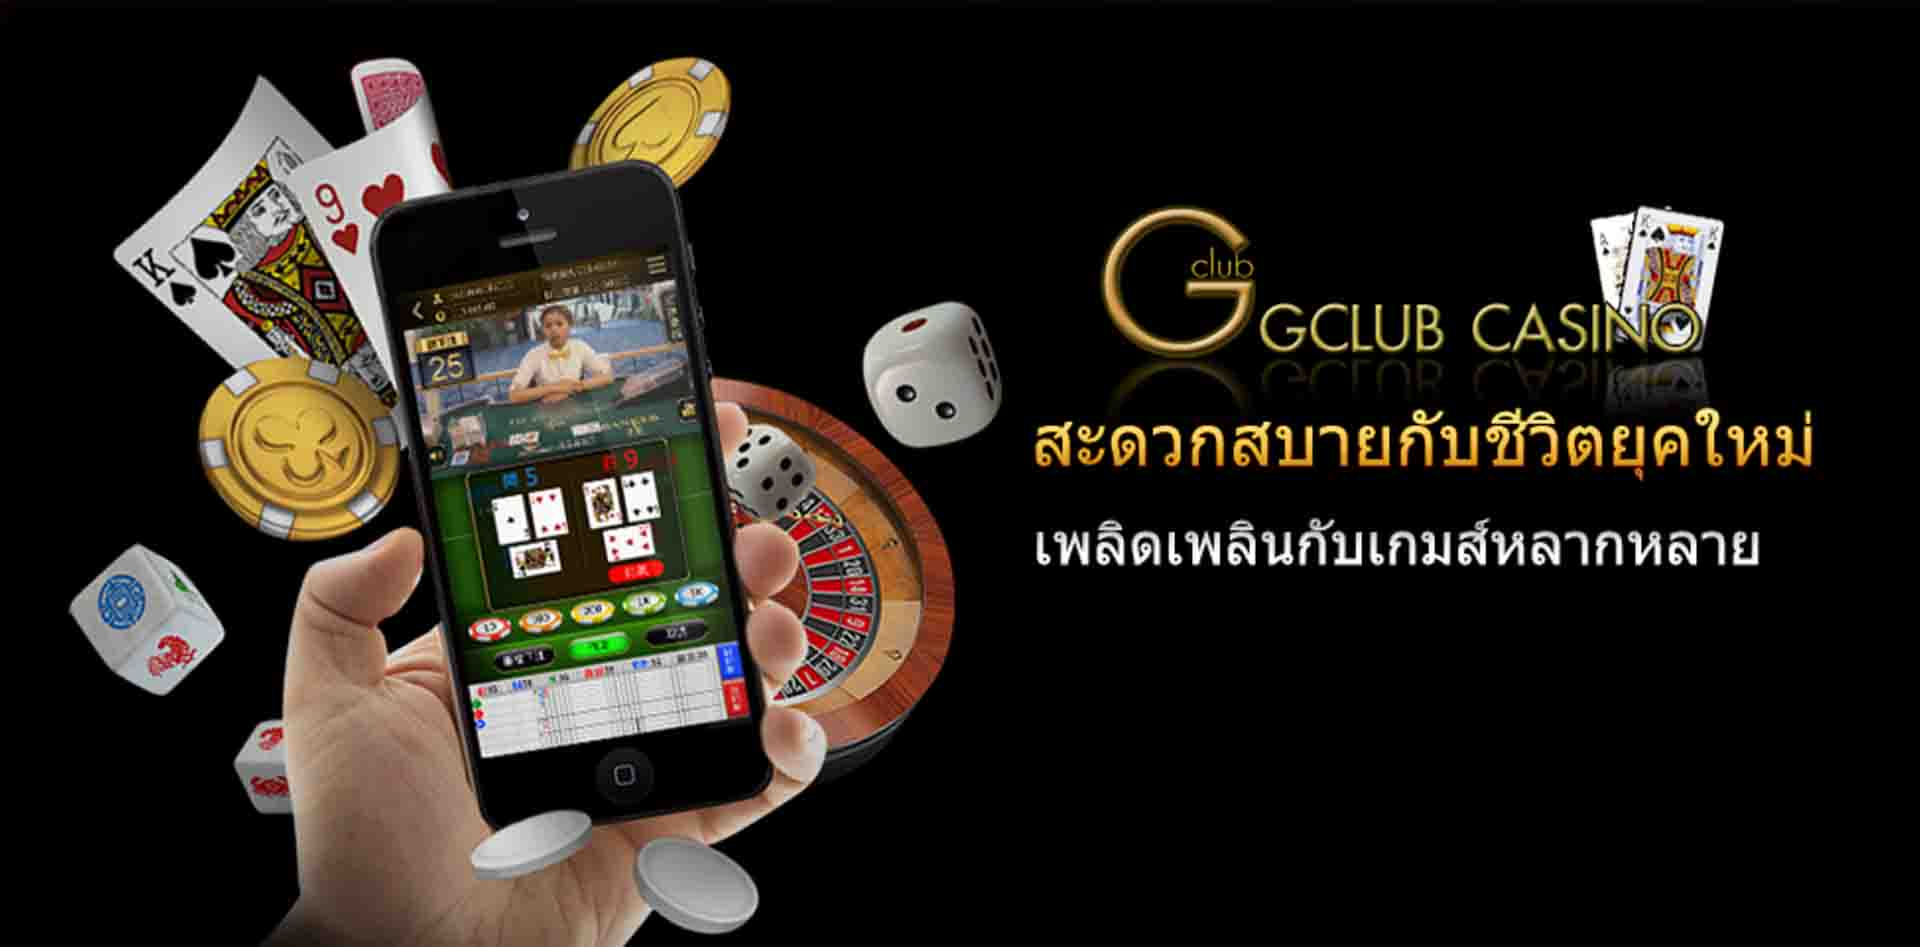 Gclub-casino-mobile-24